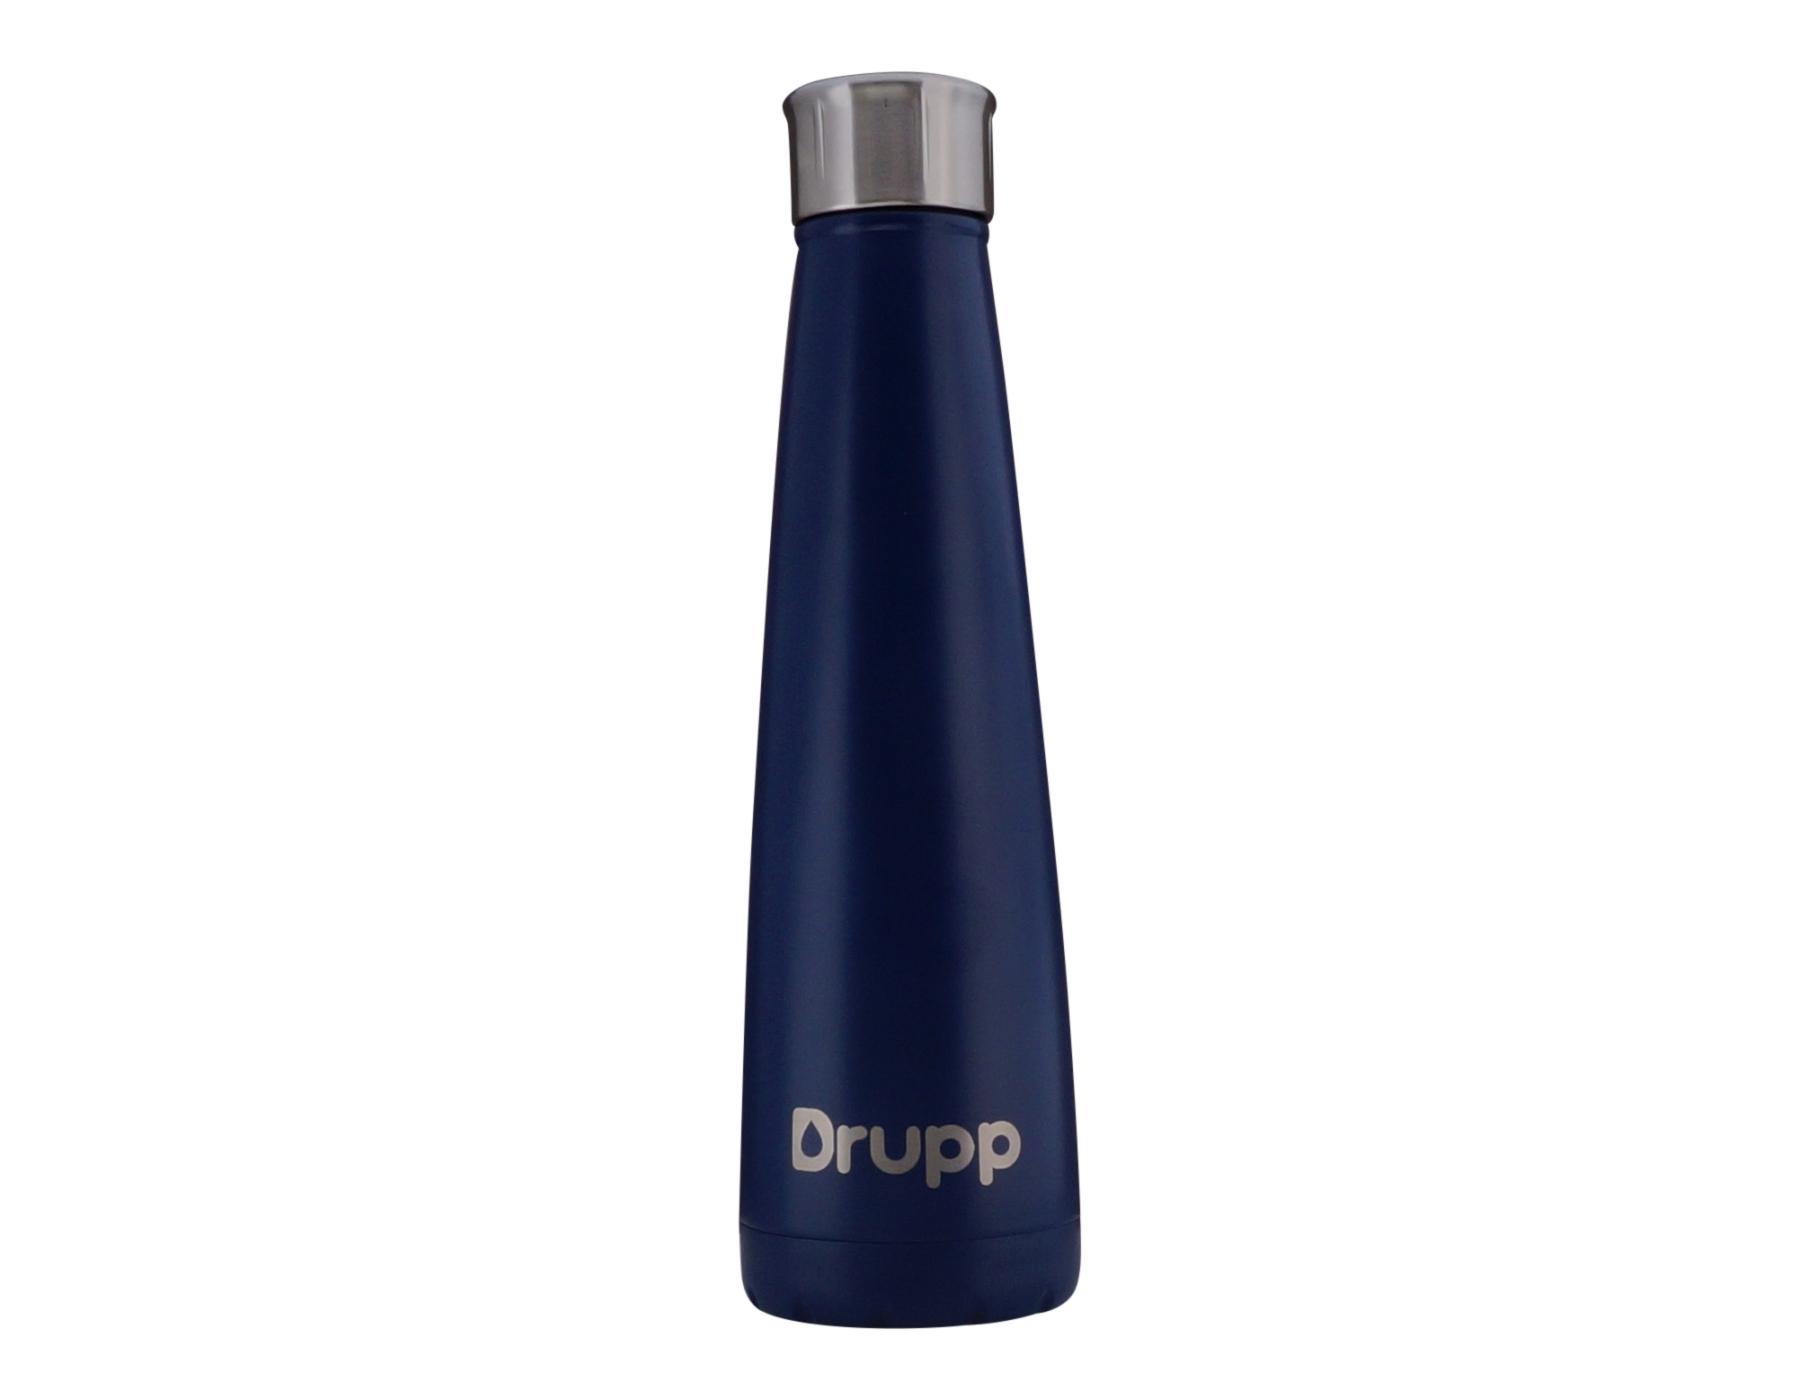 Drupp luxe thermosfles blauw